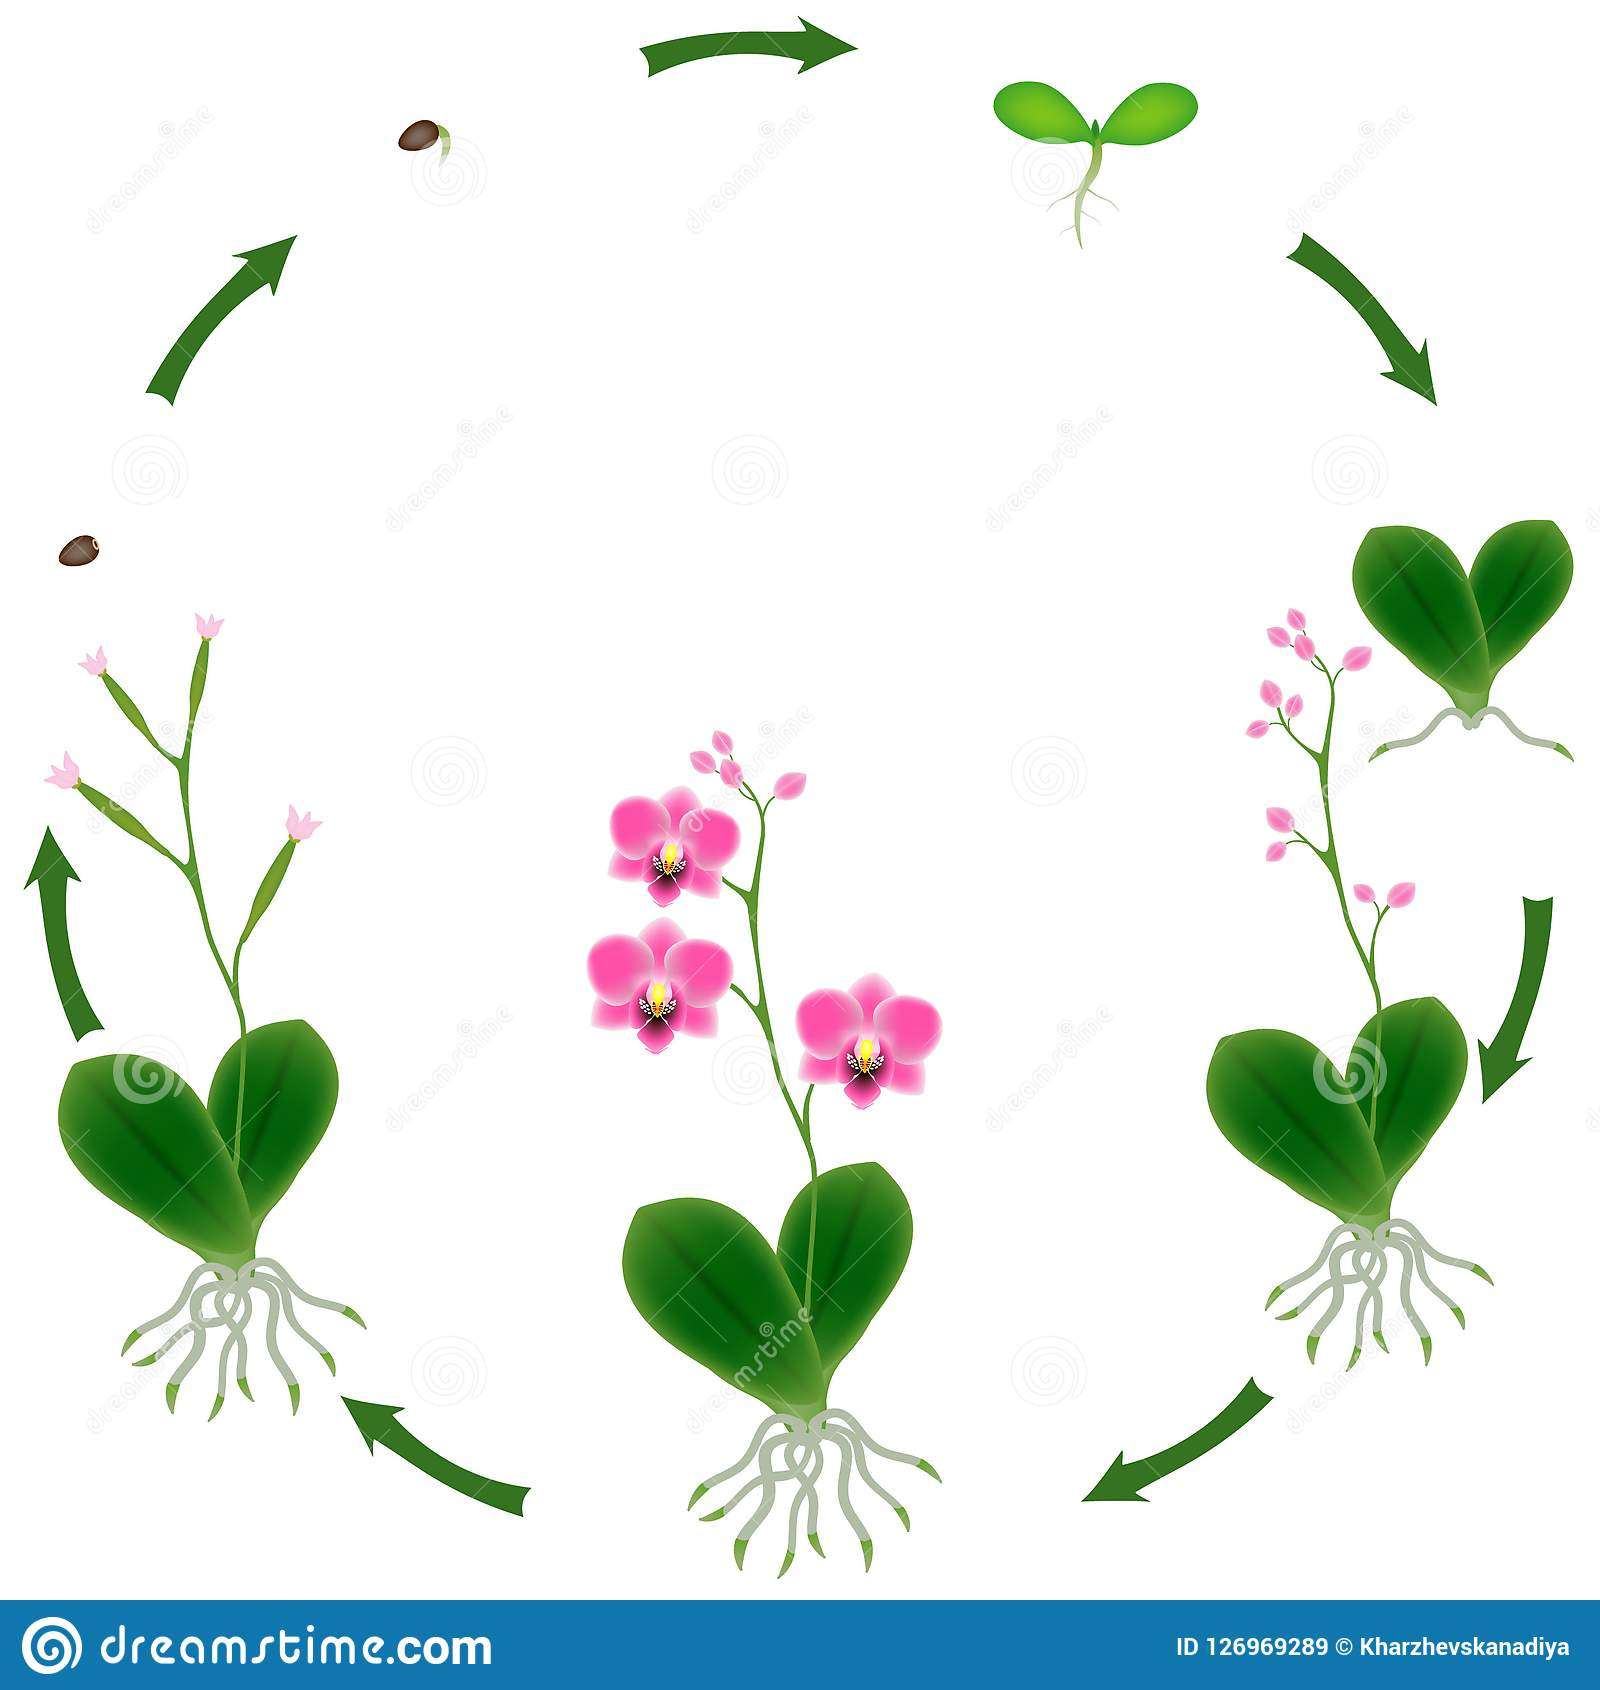 Life Cycle Of A Orchid Plant On A White Background Stock Vector